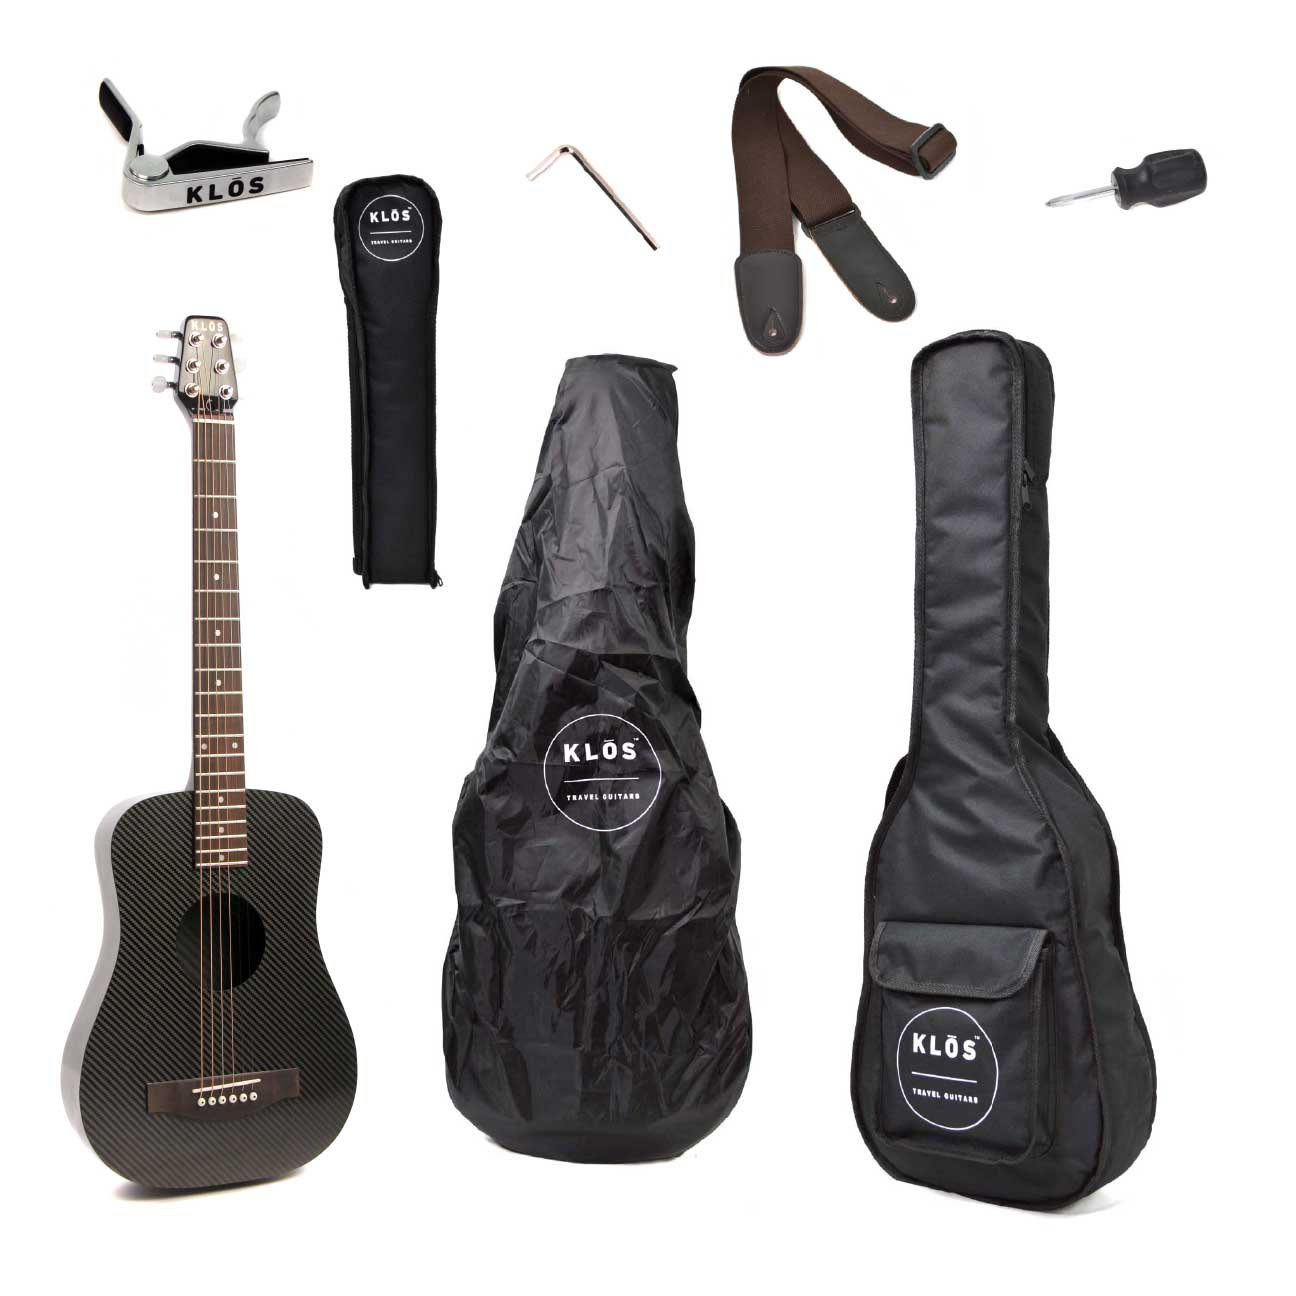 22a86823012 Get Quotations · KLOS Black Carbon Fiber Travel Acoustic Guitar Package ( Guitar, Gig Bag, Strap,